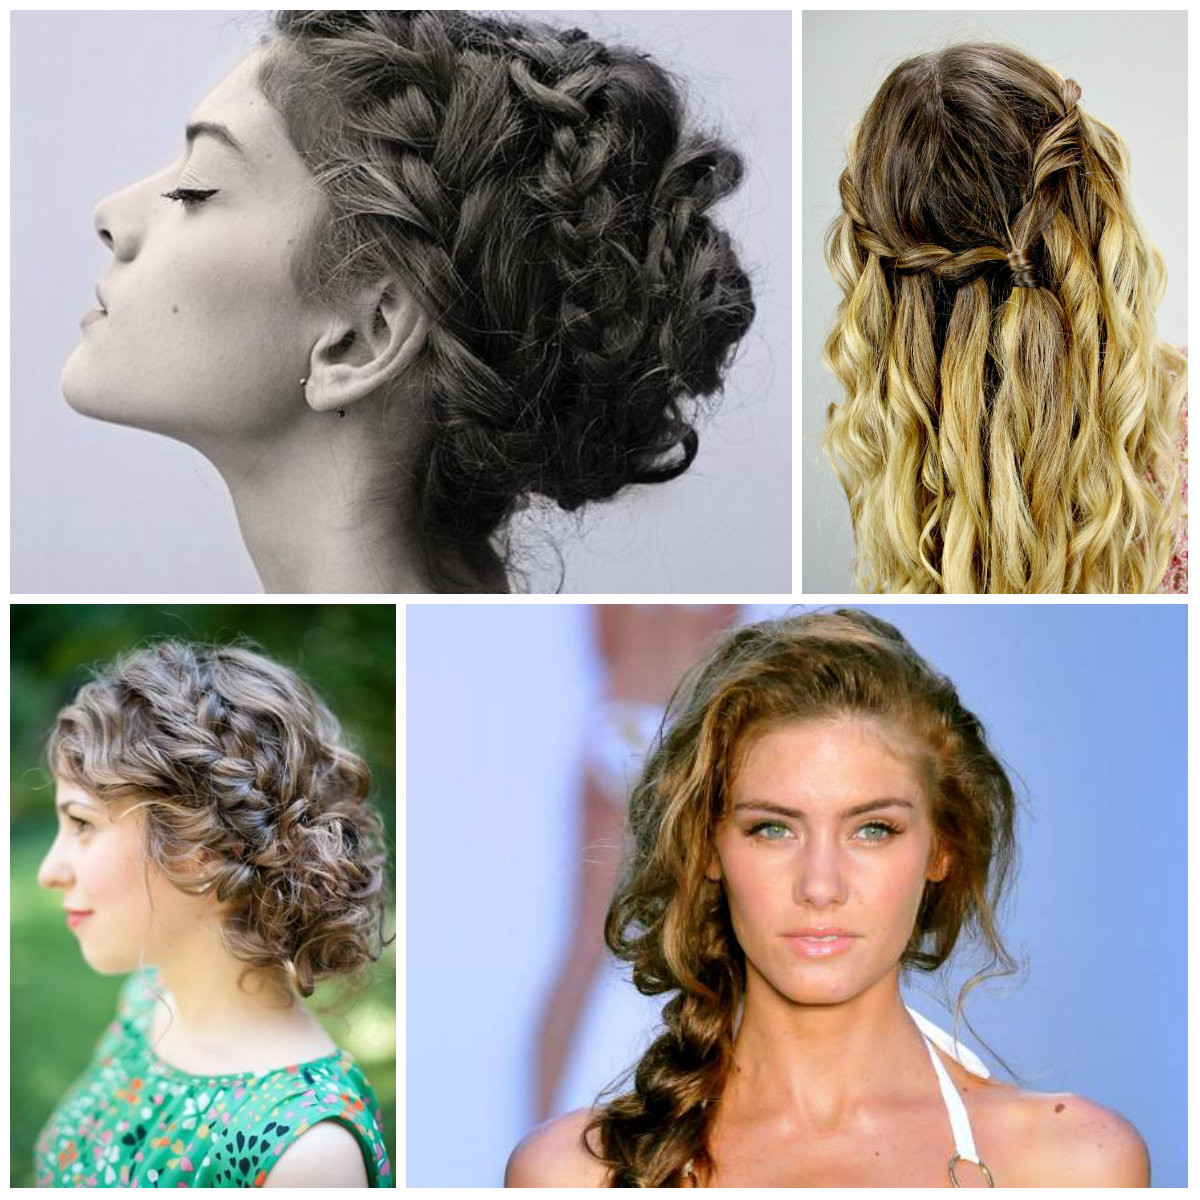 Best ideas about Curls Hairstyles With Braids . Save or Pin Trendspotting for Summer Curls 2016 Now.